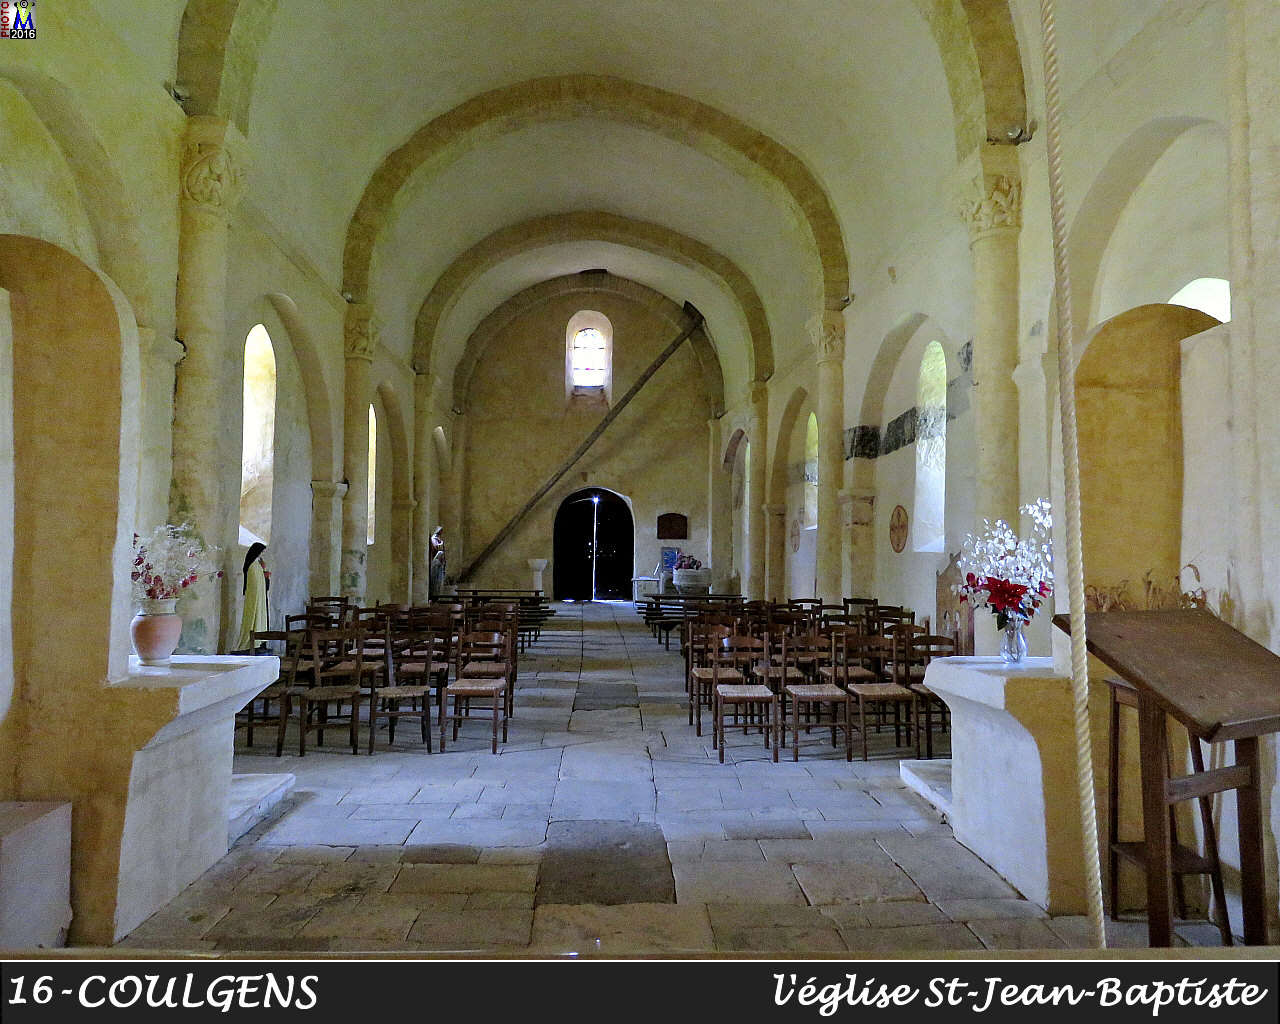 16COULGENS_eglise_1102.jpg